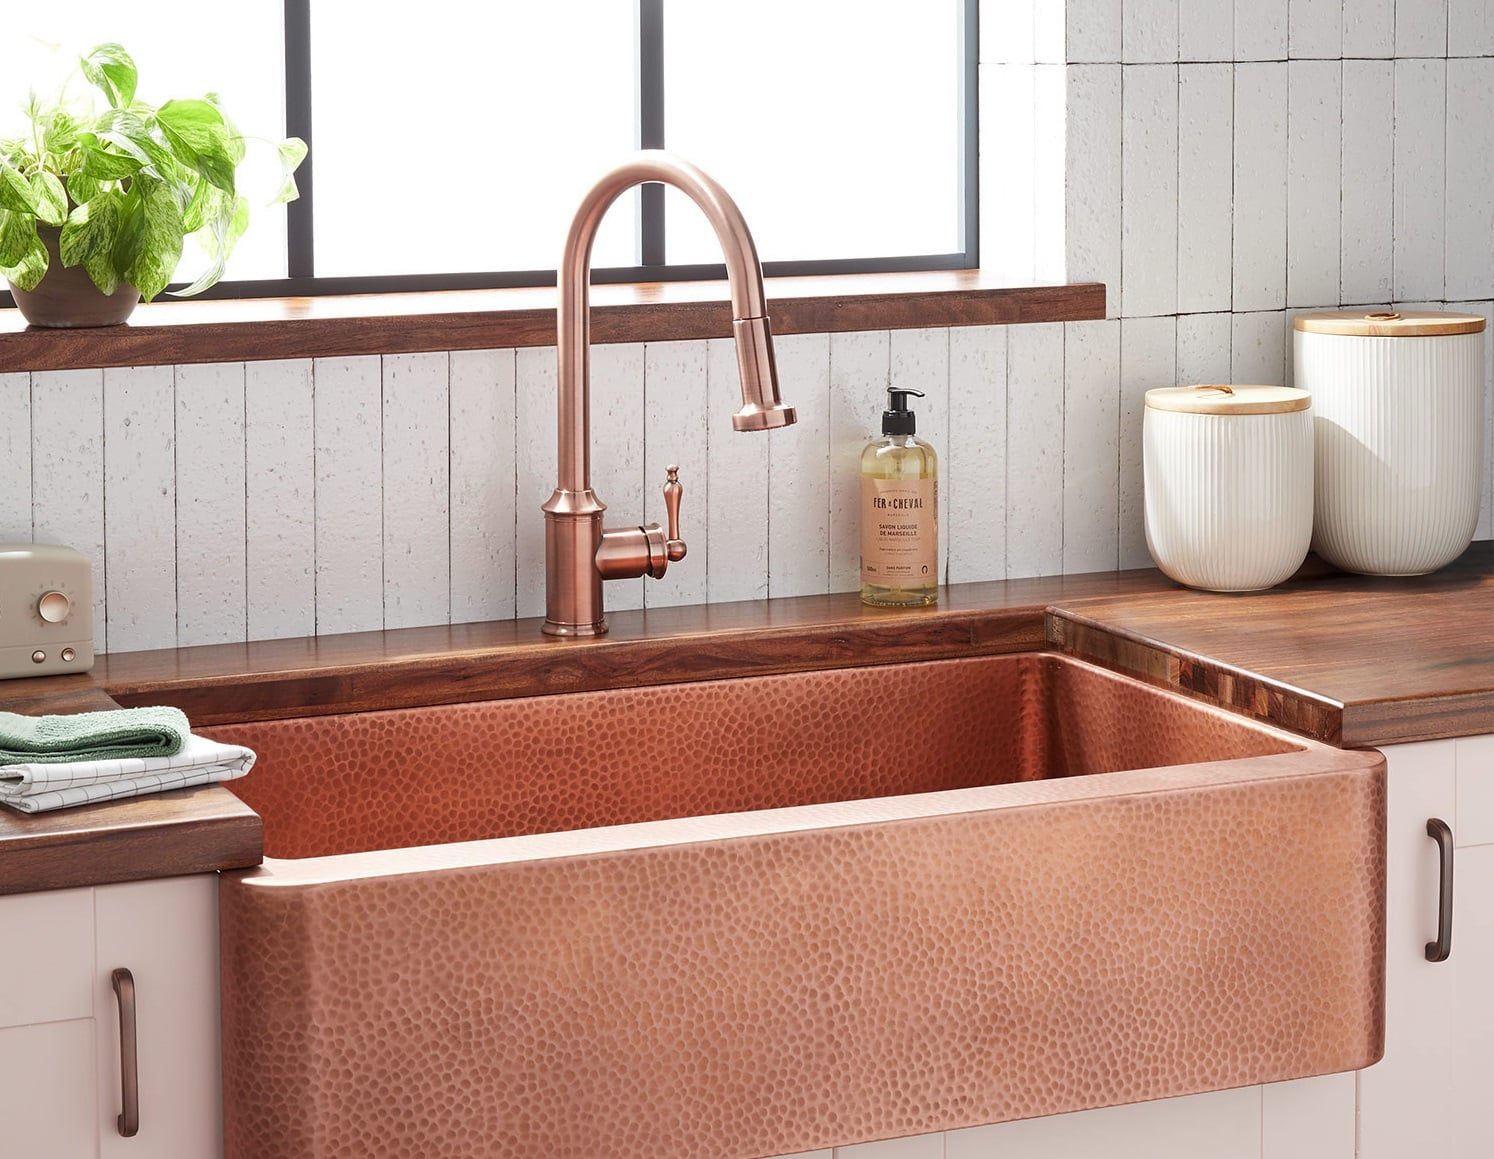 5 Best Copper Sink For Legendary Designs Architecture Lab